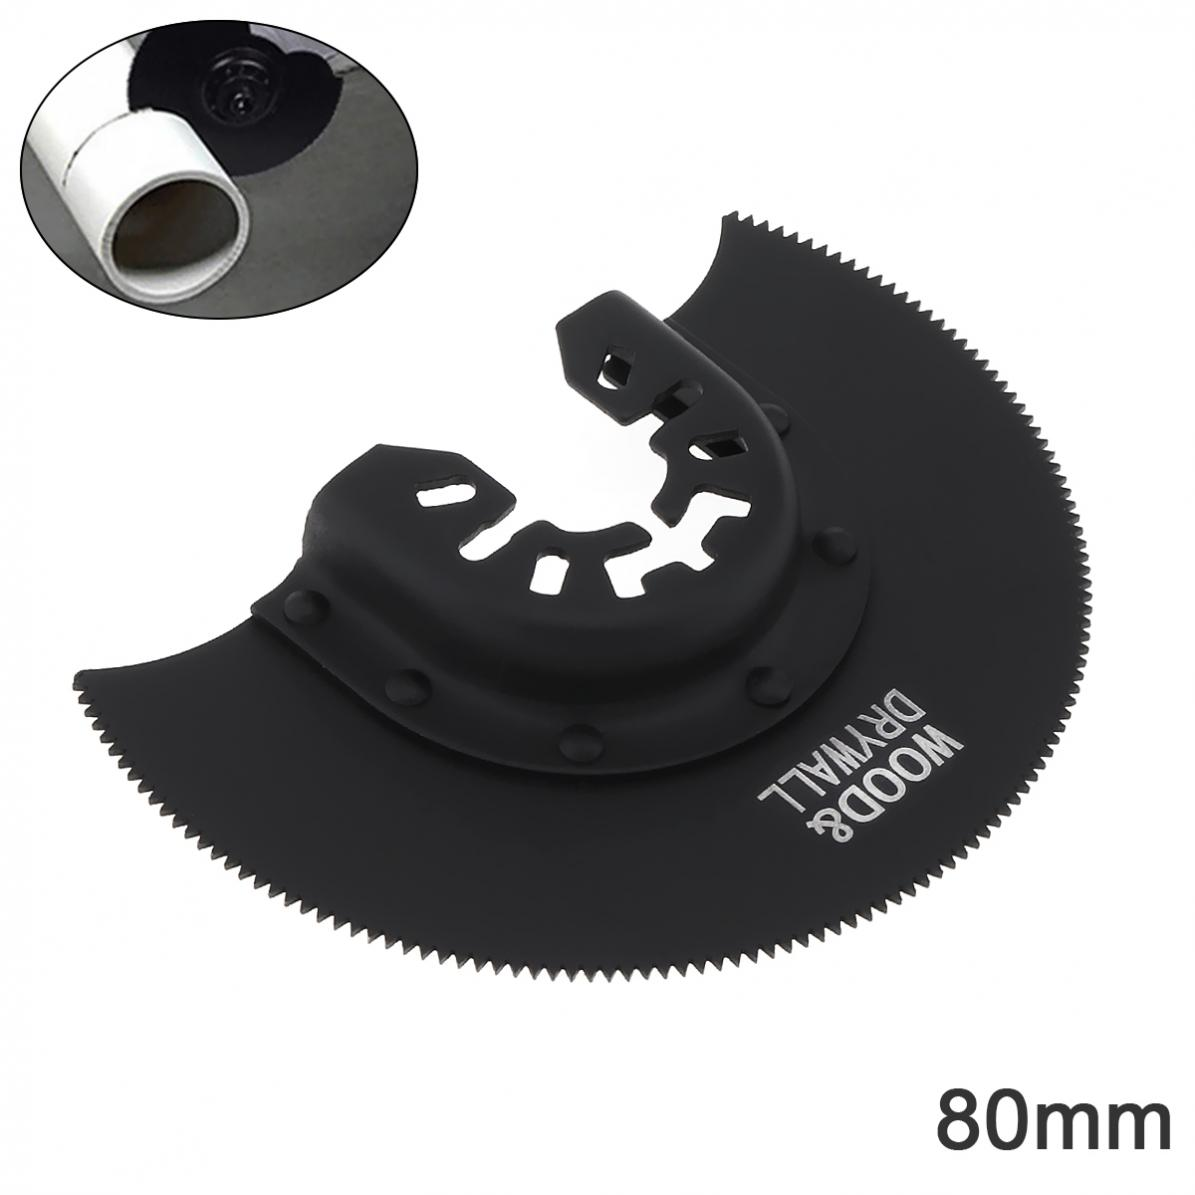 80mm Black 65 Manganese Steel Saw Blade Power Tool Accessories With Sharp Tooth Fit For Wood / Sheet Grinding/PVC/Nail Cutting